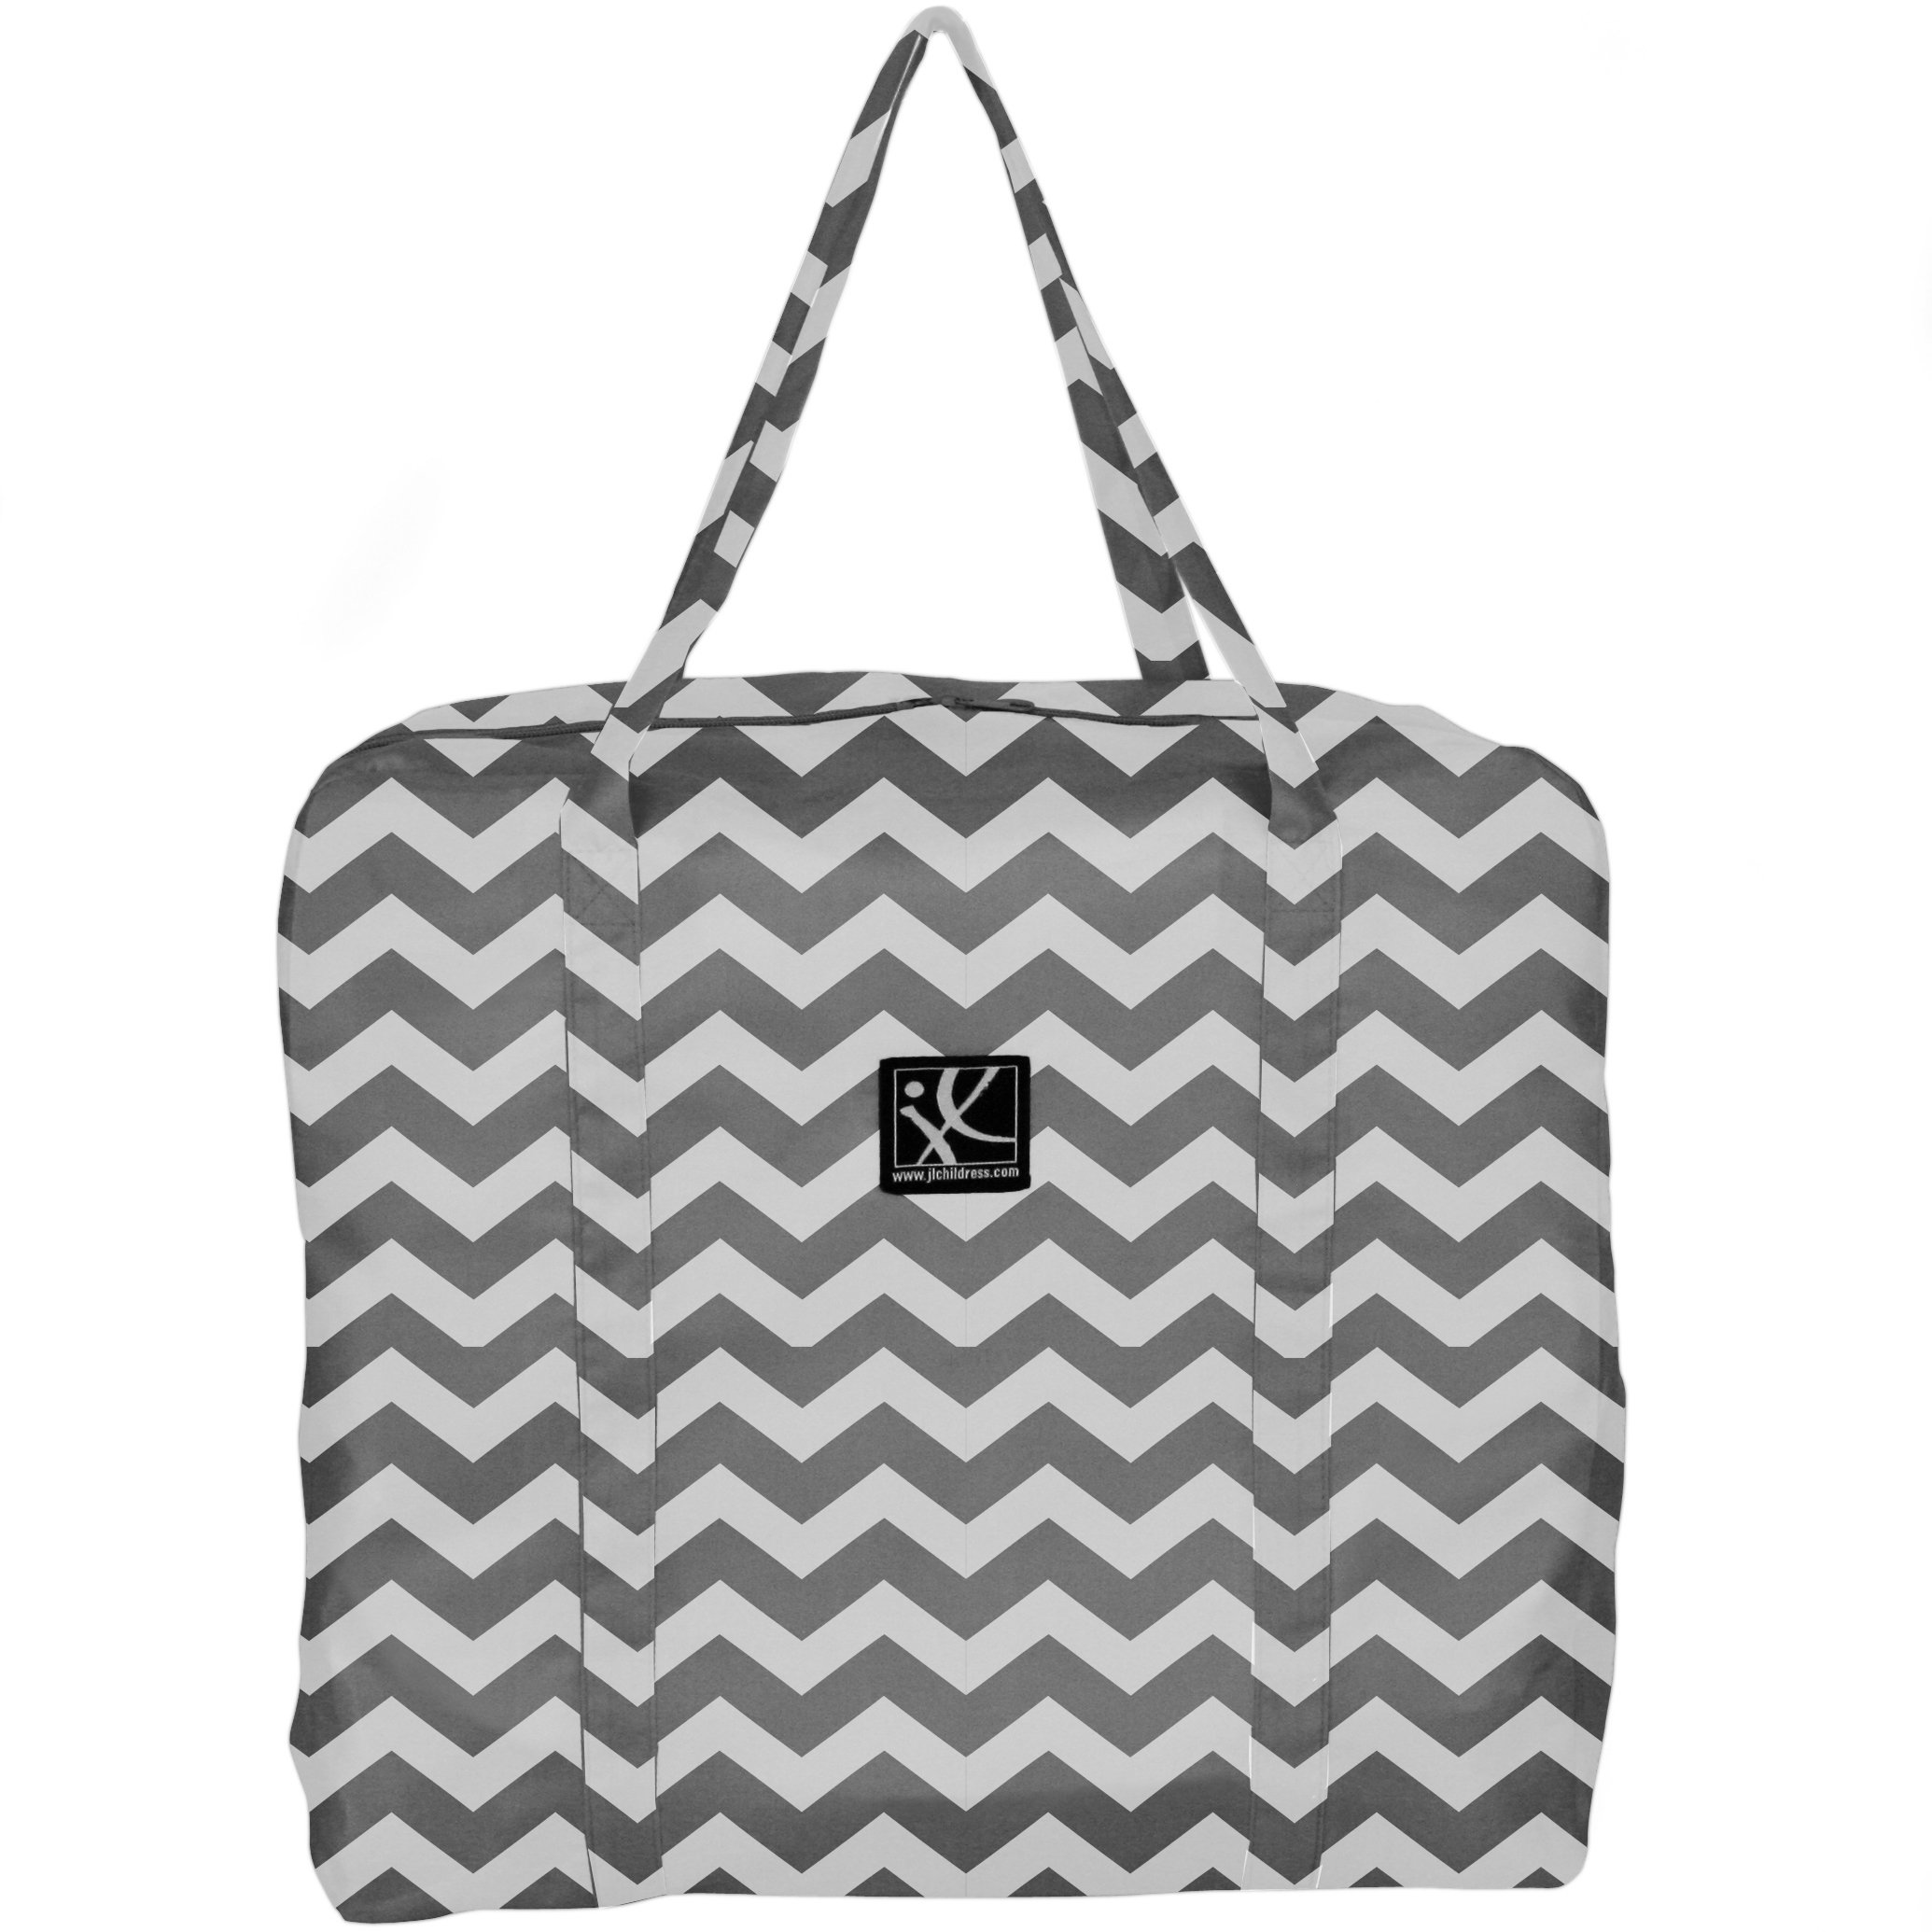 J.L. Childress Booster Go-Go Travel Bag for Backless Seats, Chevron by J.L. Childress